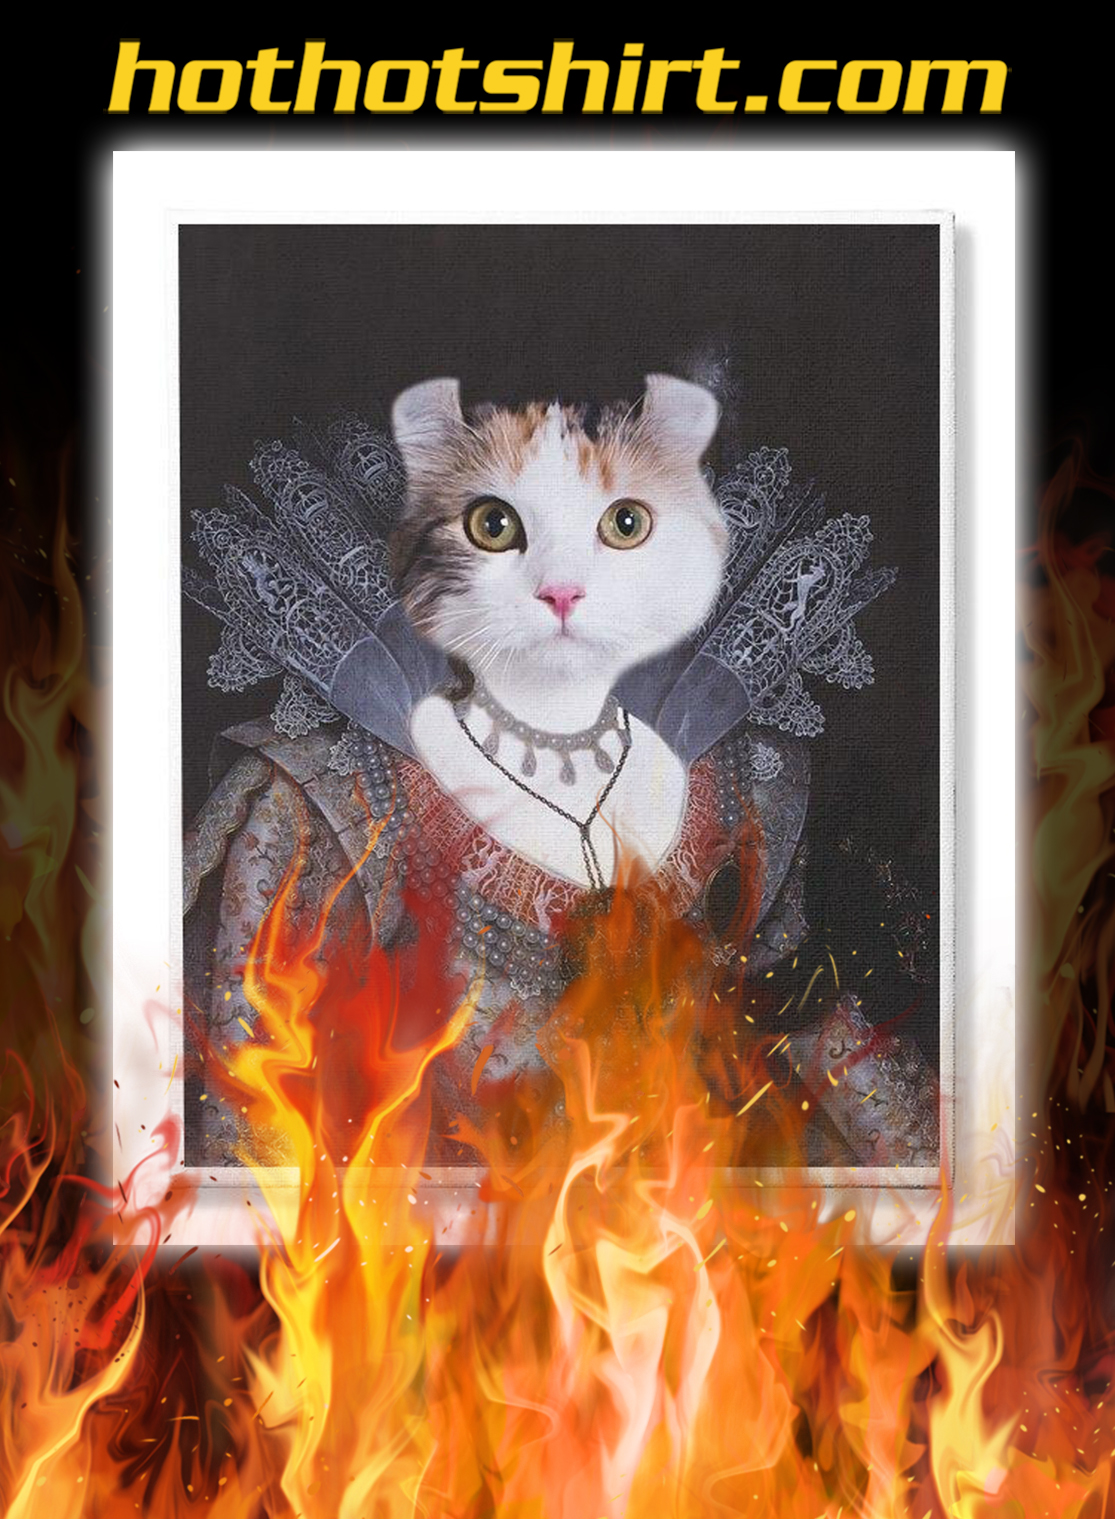 Personalized custom cat and pet photo canvas prints- pic 3